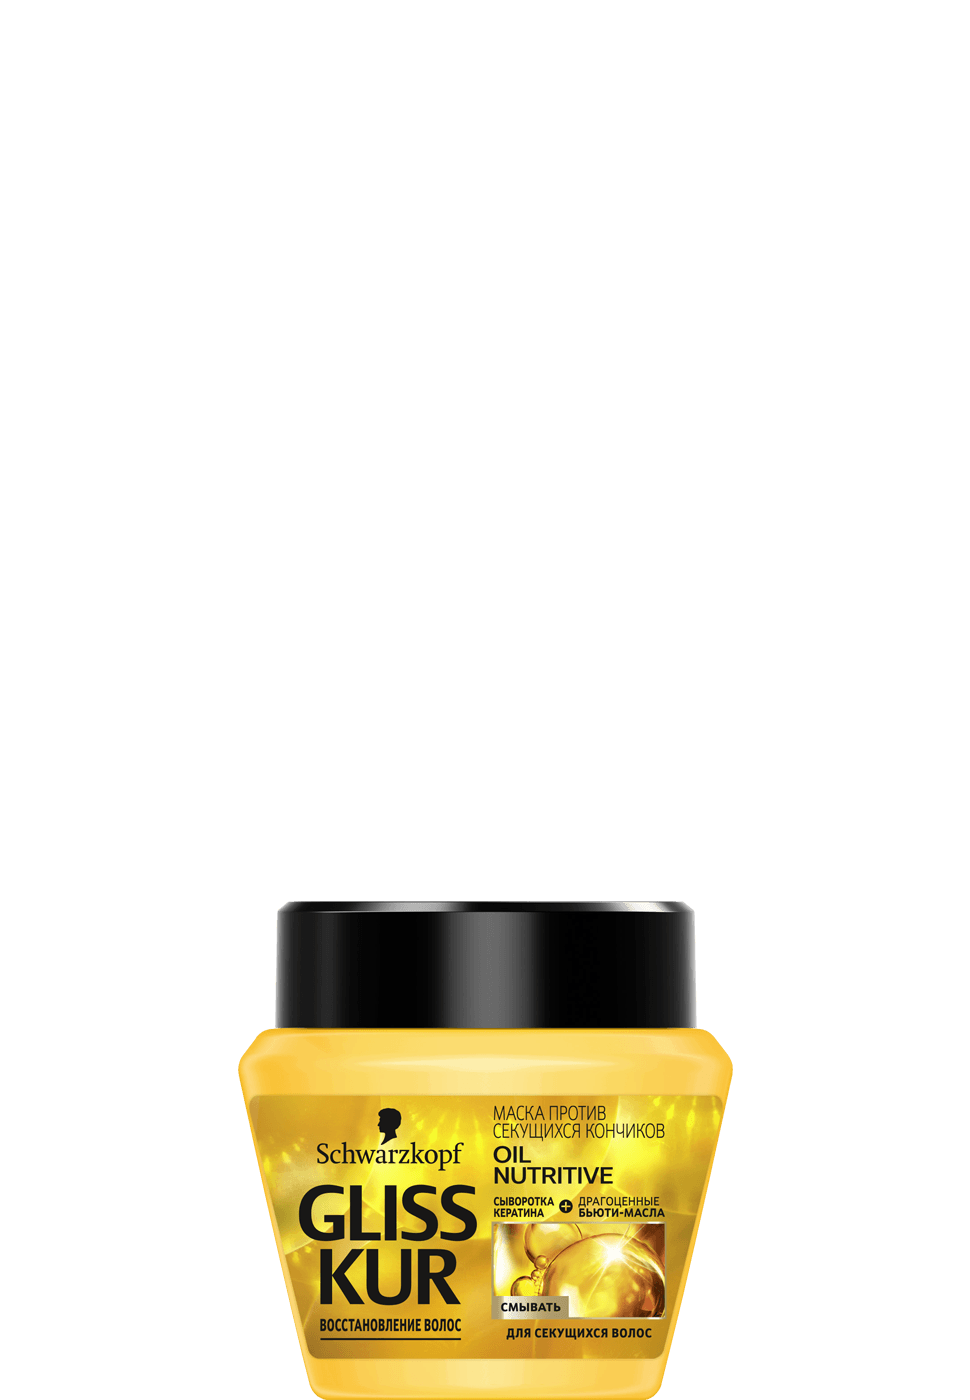 glisskur_ru_oil_nutritive_mask_970x1400